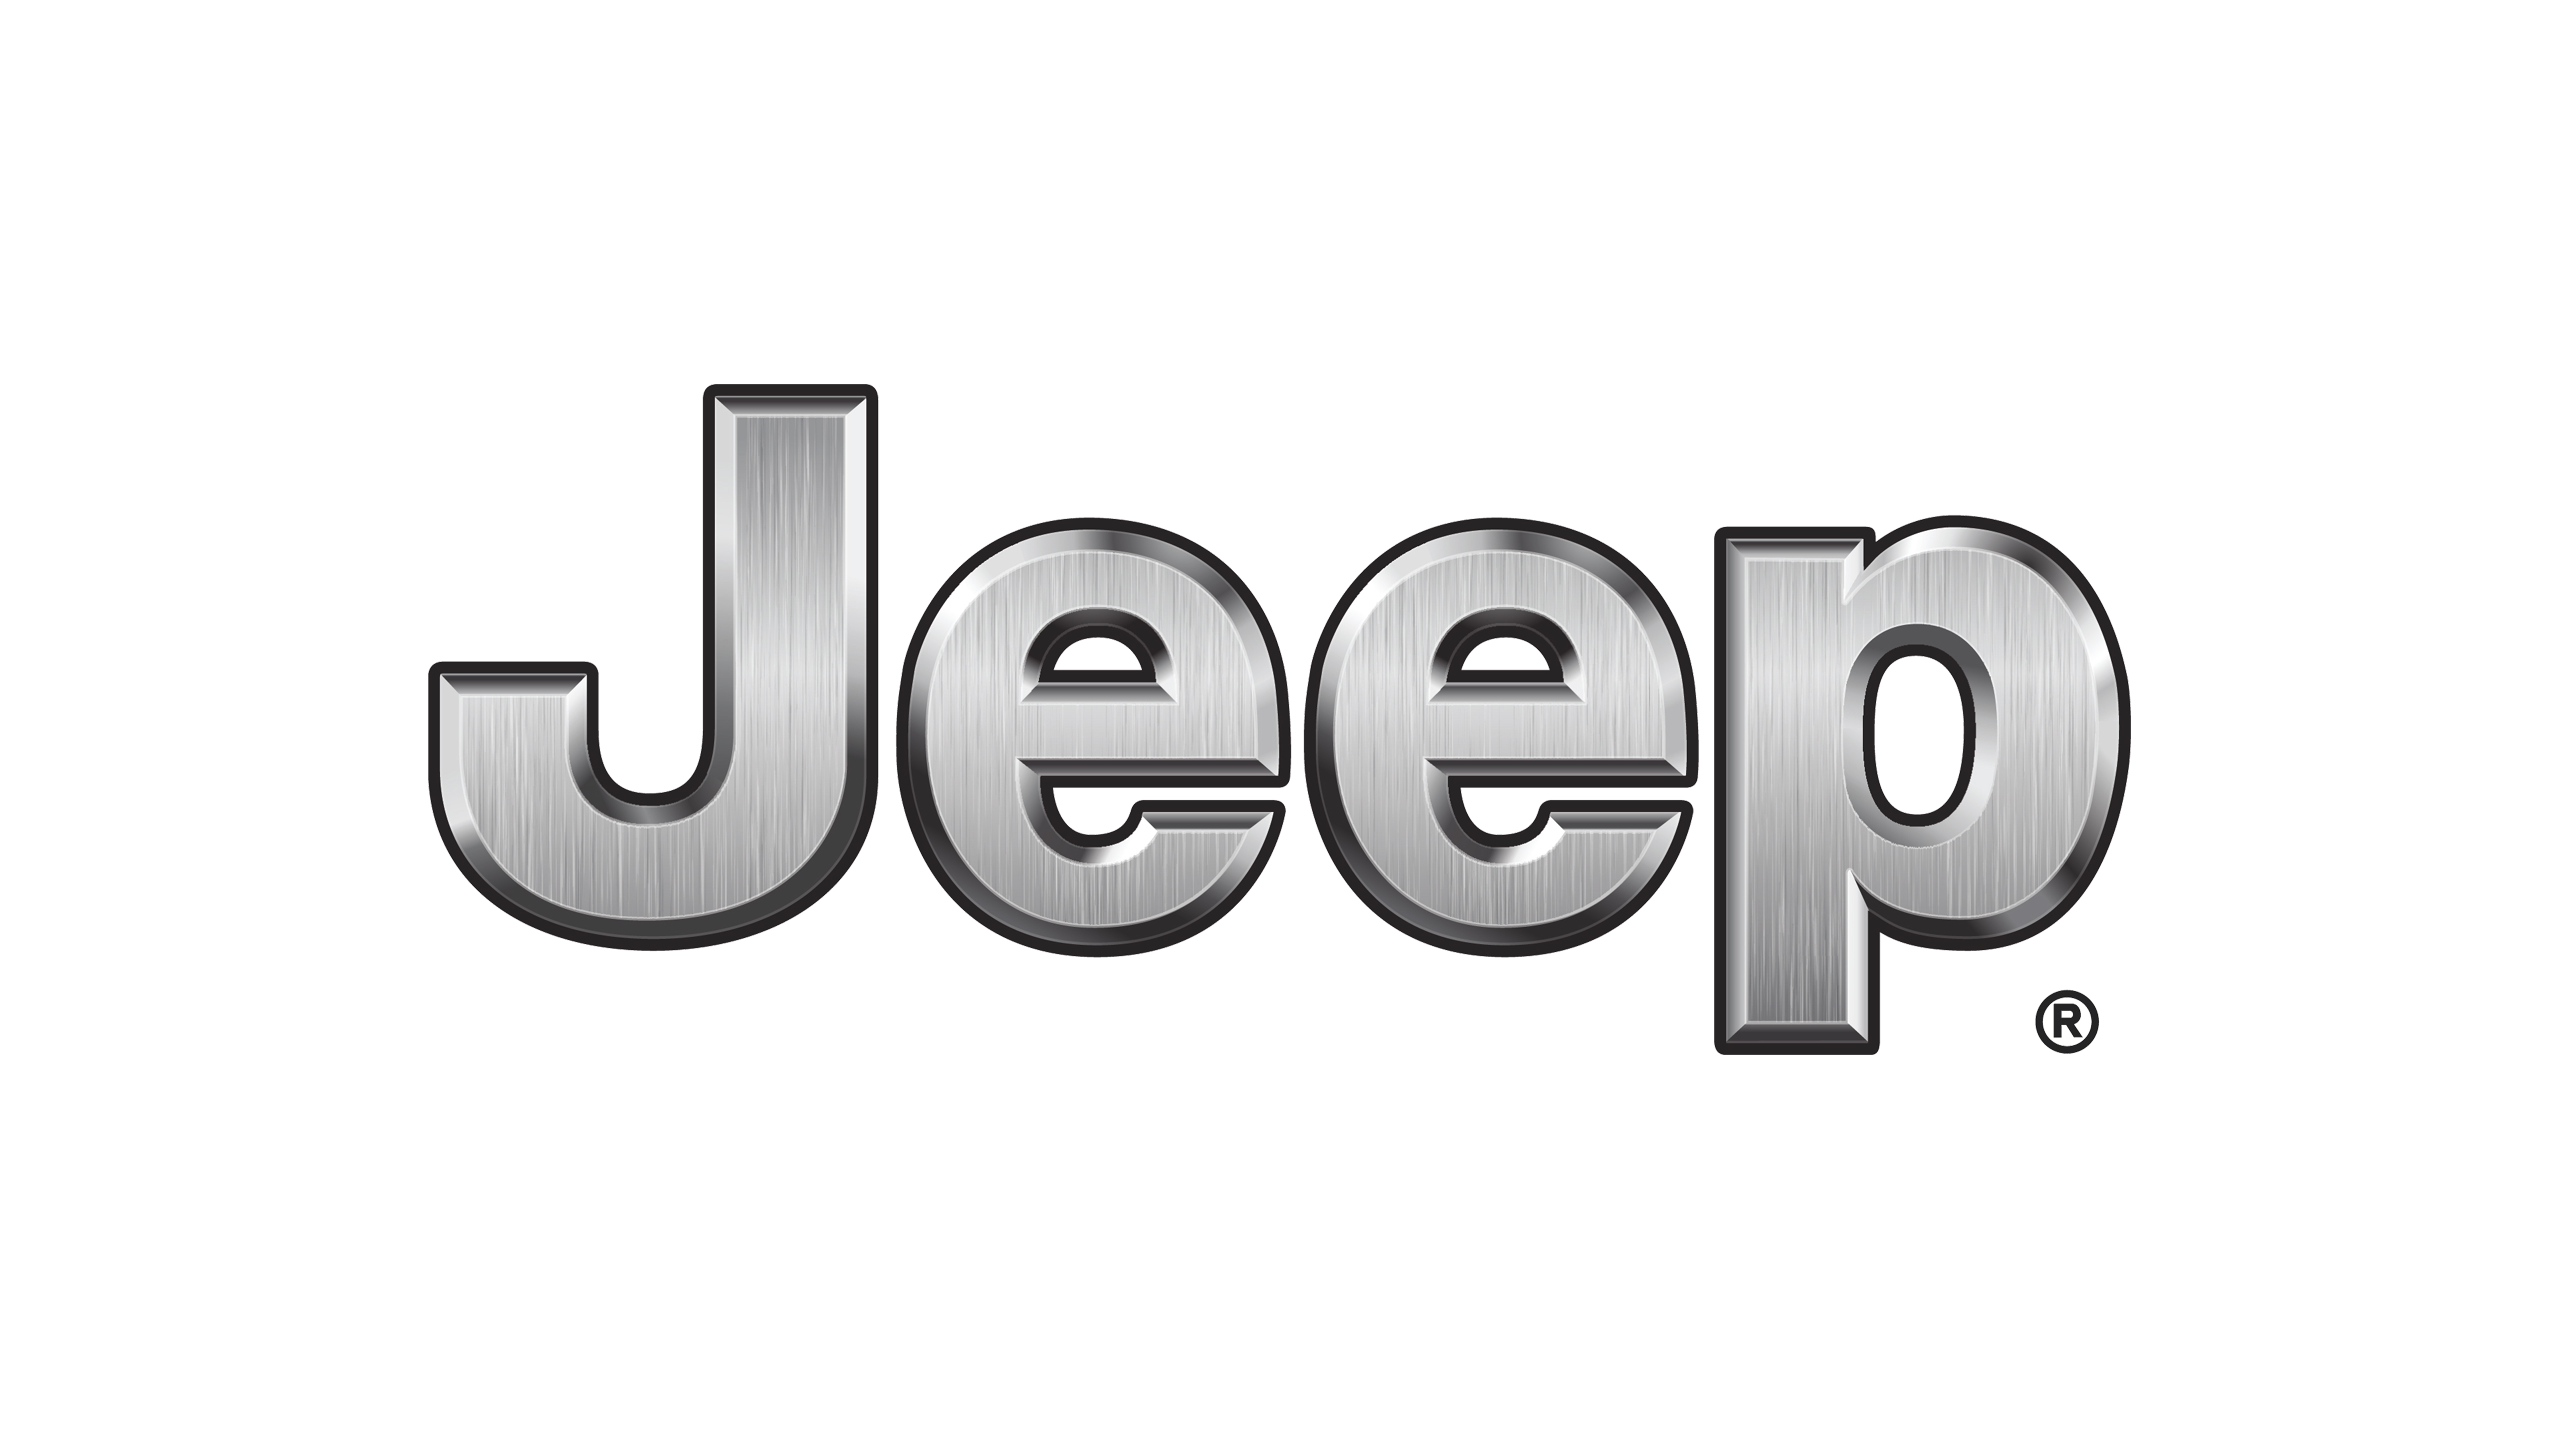 Jeep logo png black. Hd meaning information carlogos